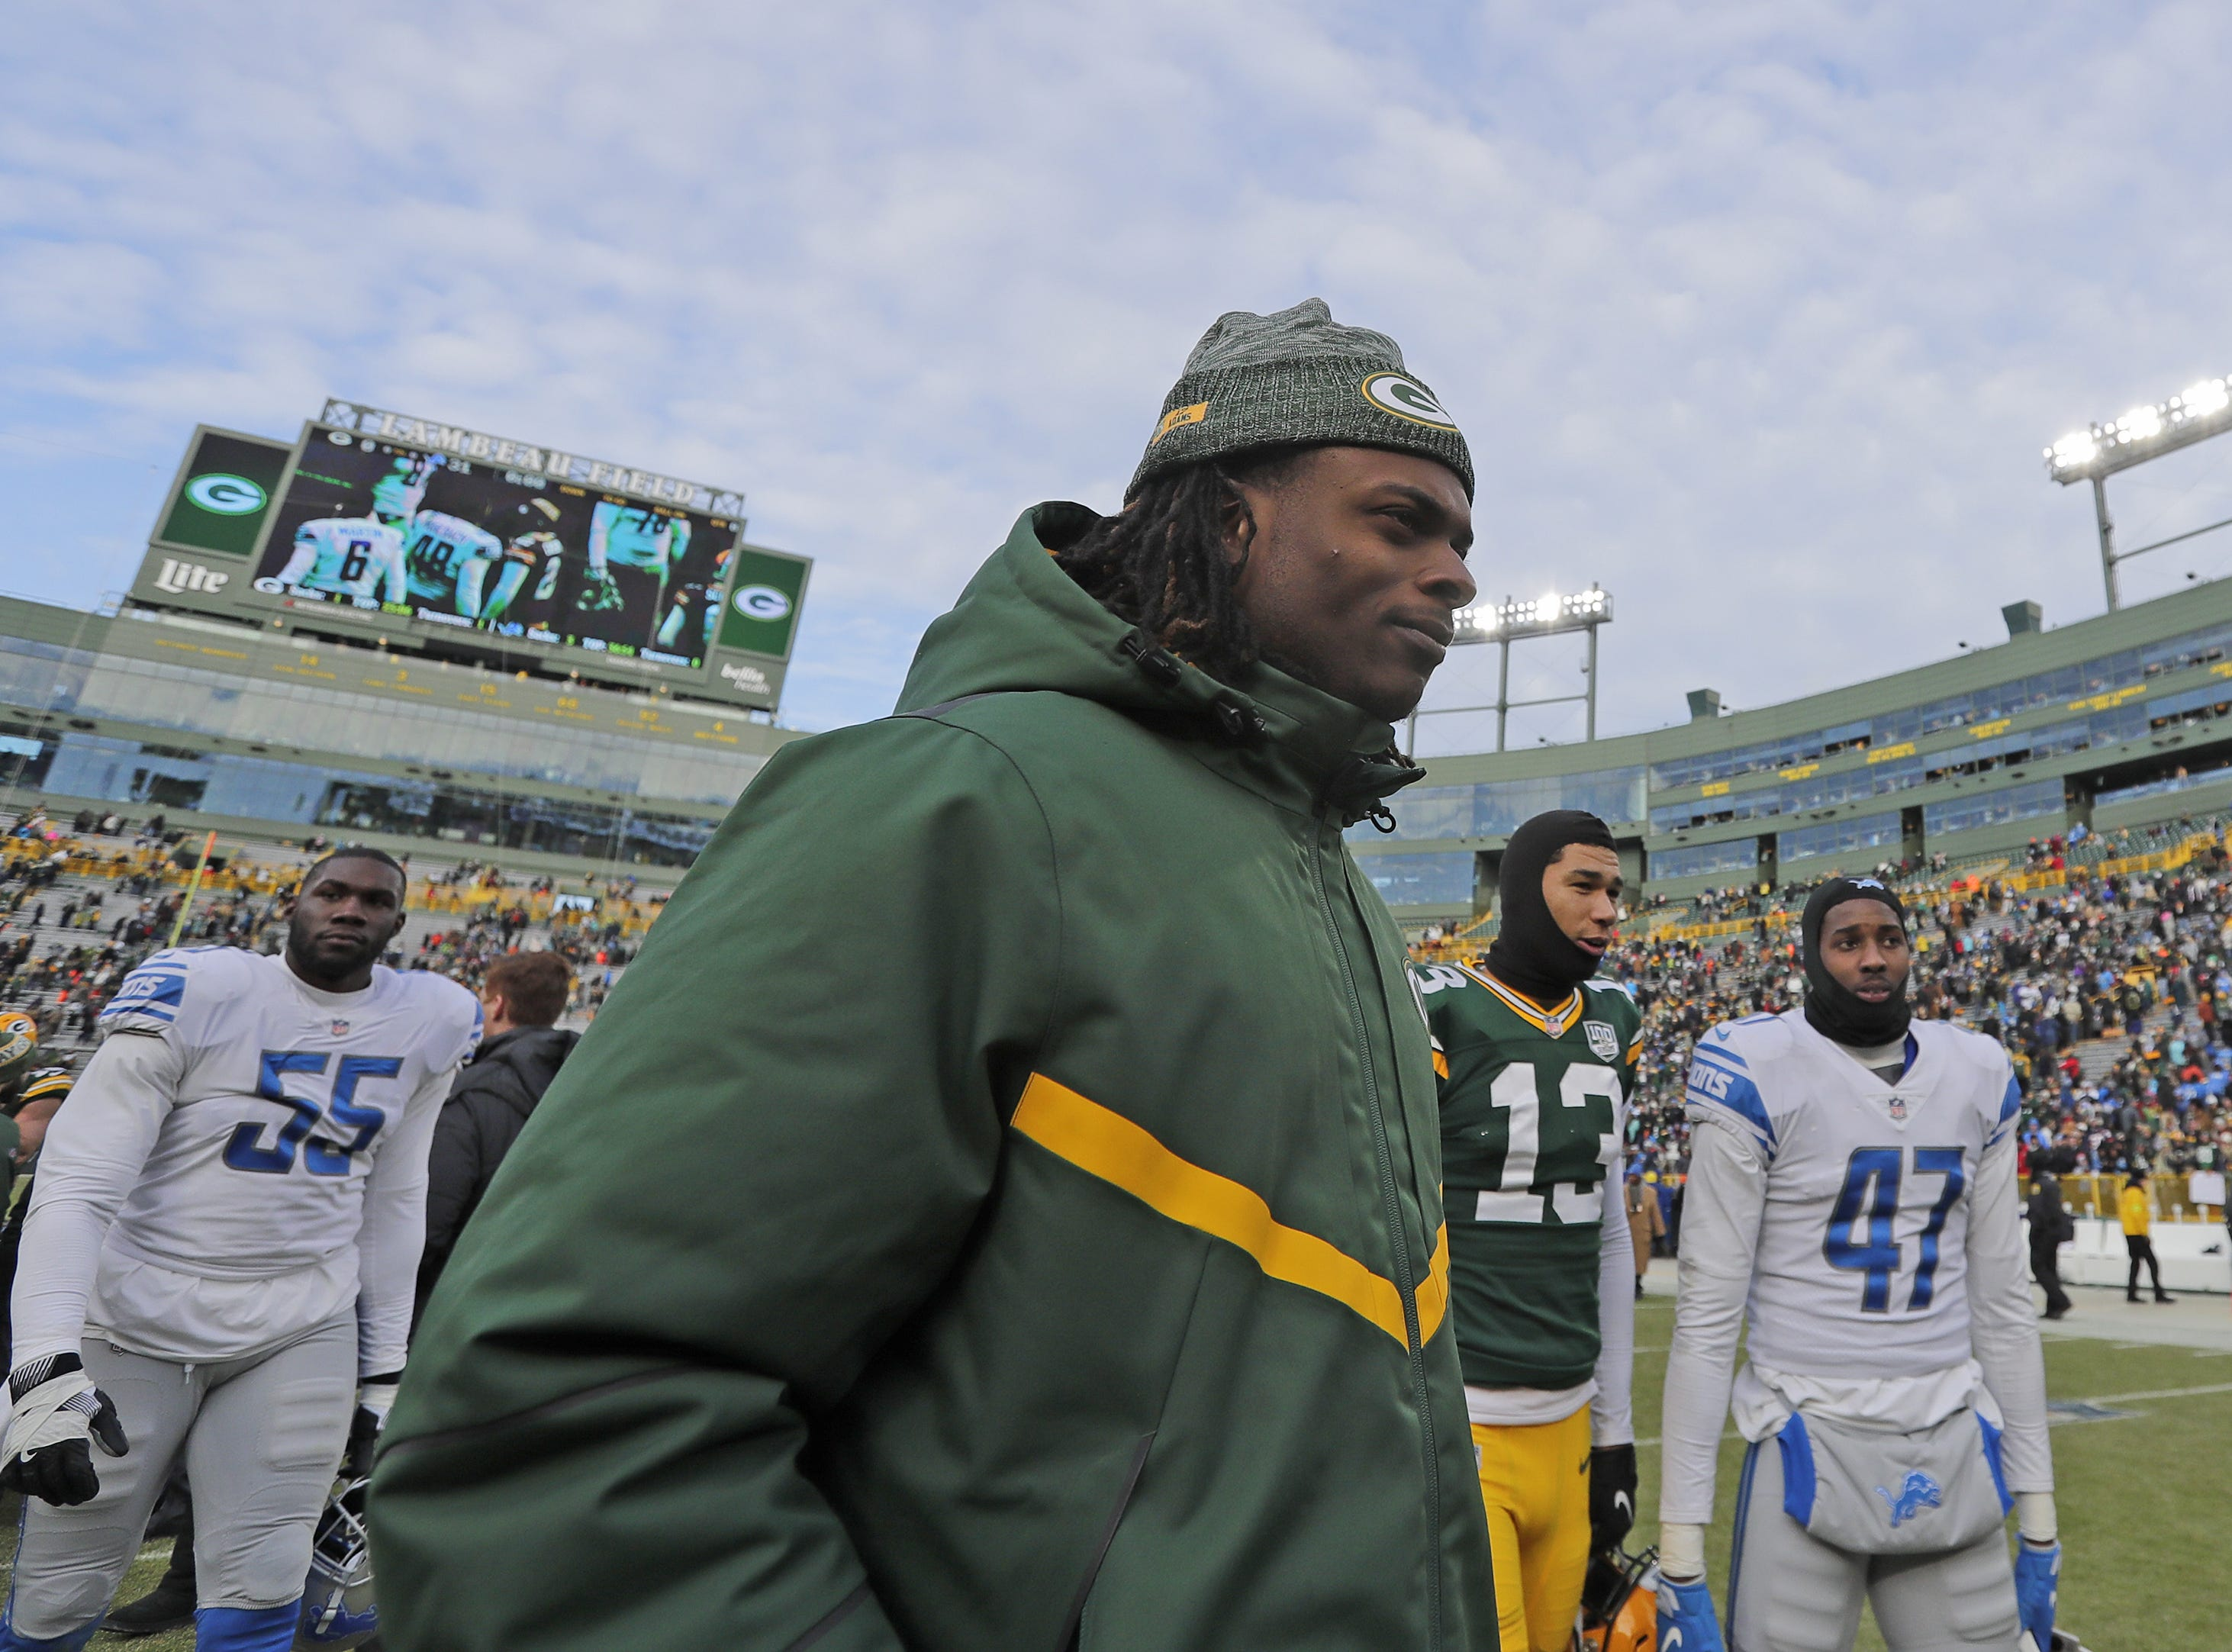 Green Bay Packers wide receiver Davante Adams (17) walks off the field after the Packers lost to the Detroit Lions at Lambeau Field on Sunday, December 30, 2018 in Green Bay, Wis. Adam Wesley/USA TODAY NETWORK-Wis